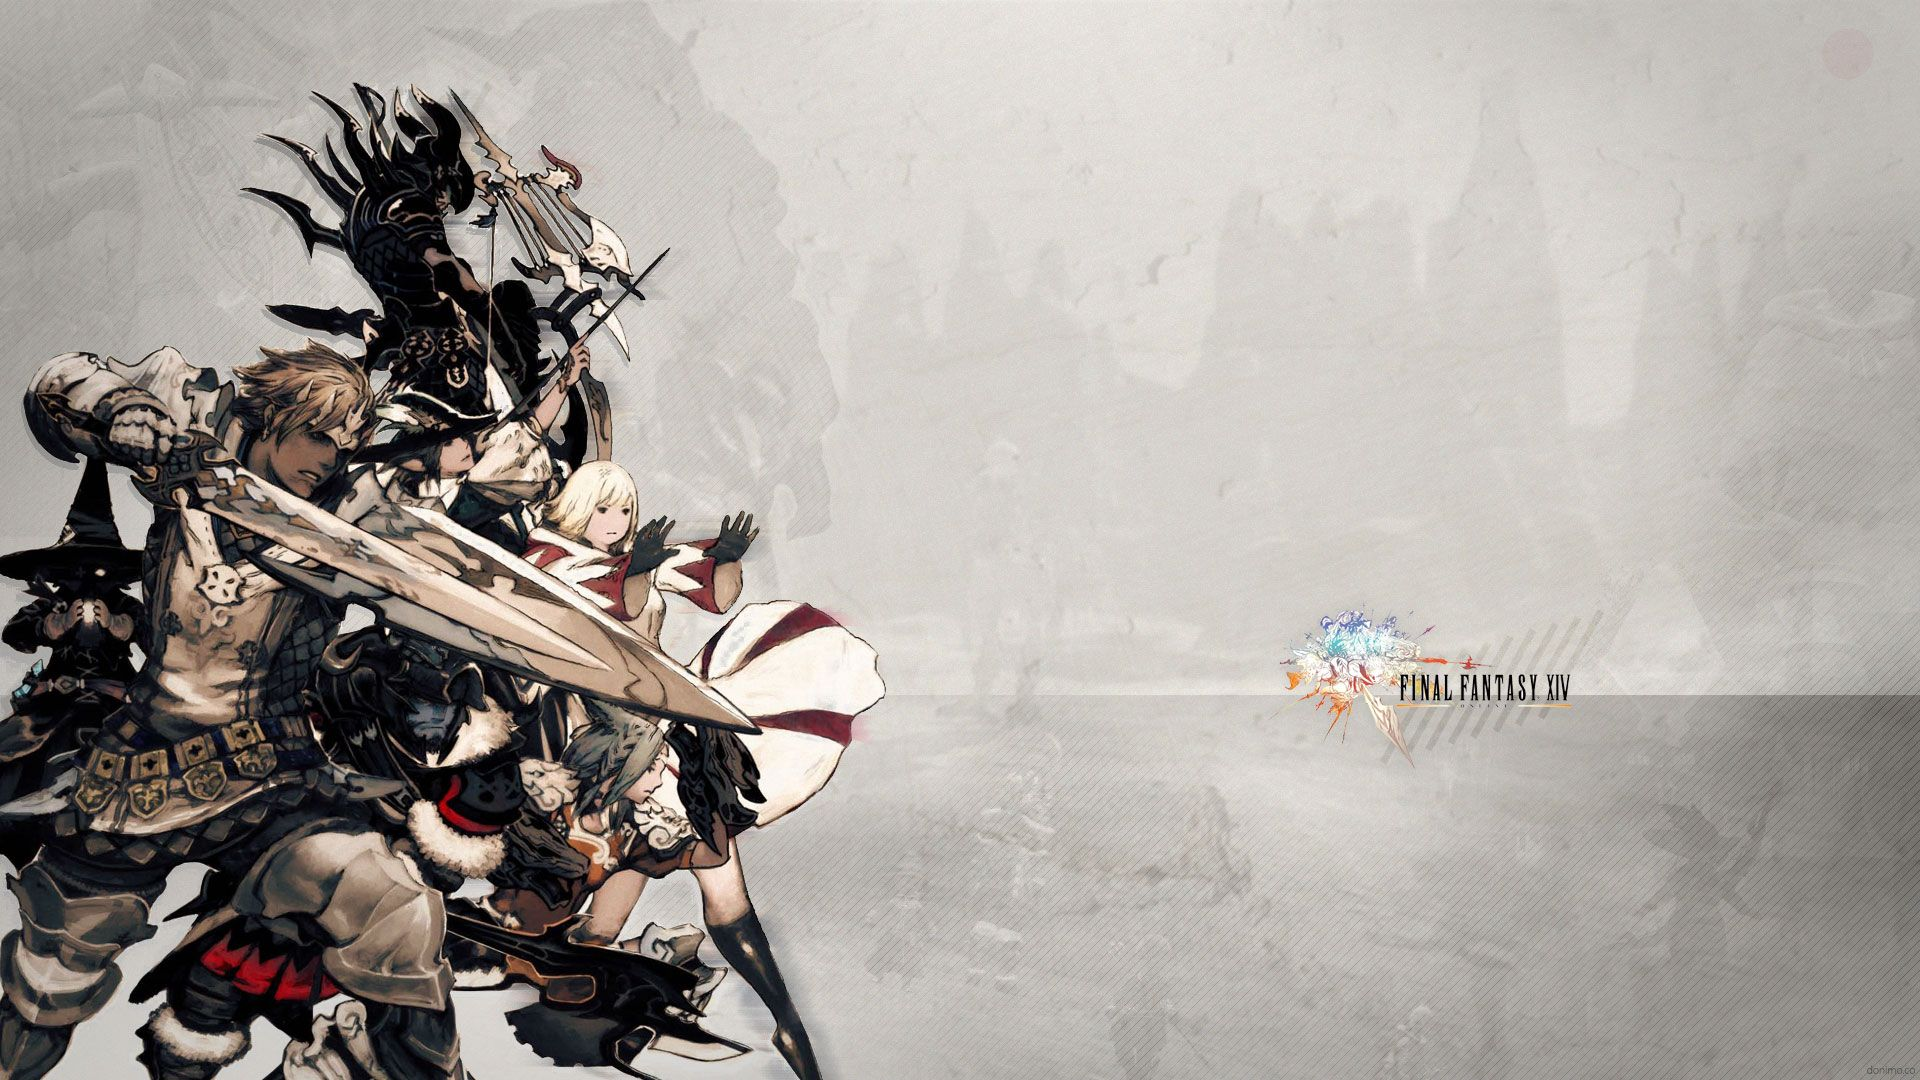 Ffxiv Wp20 Jpg 1920 1080 Final Fantasy Wallpaper Hd Wallpaper Final Fantasy